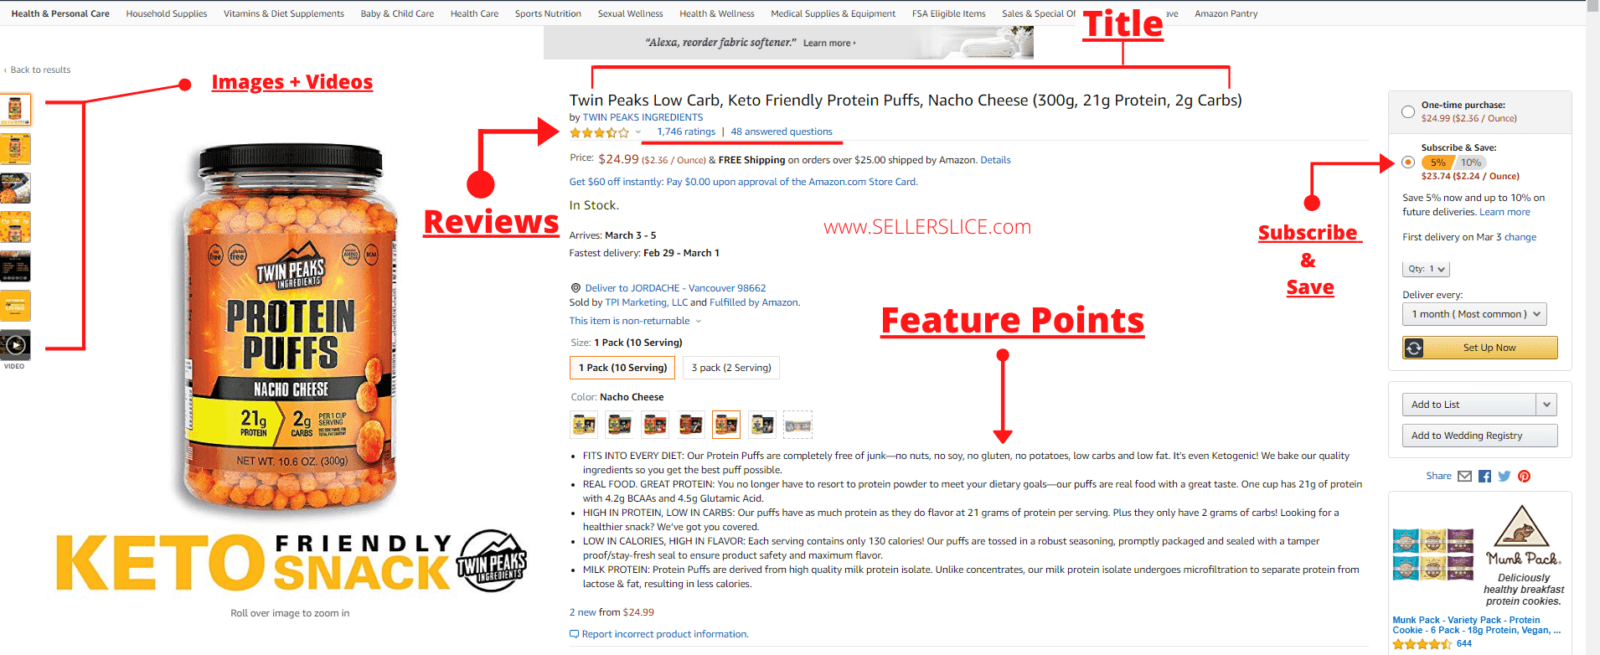 Seller Slice Breakdown of an Amazon Listing and Tips to Optimize your Amazon Listings in 2020